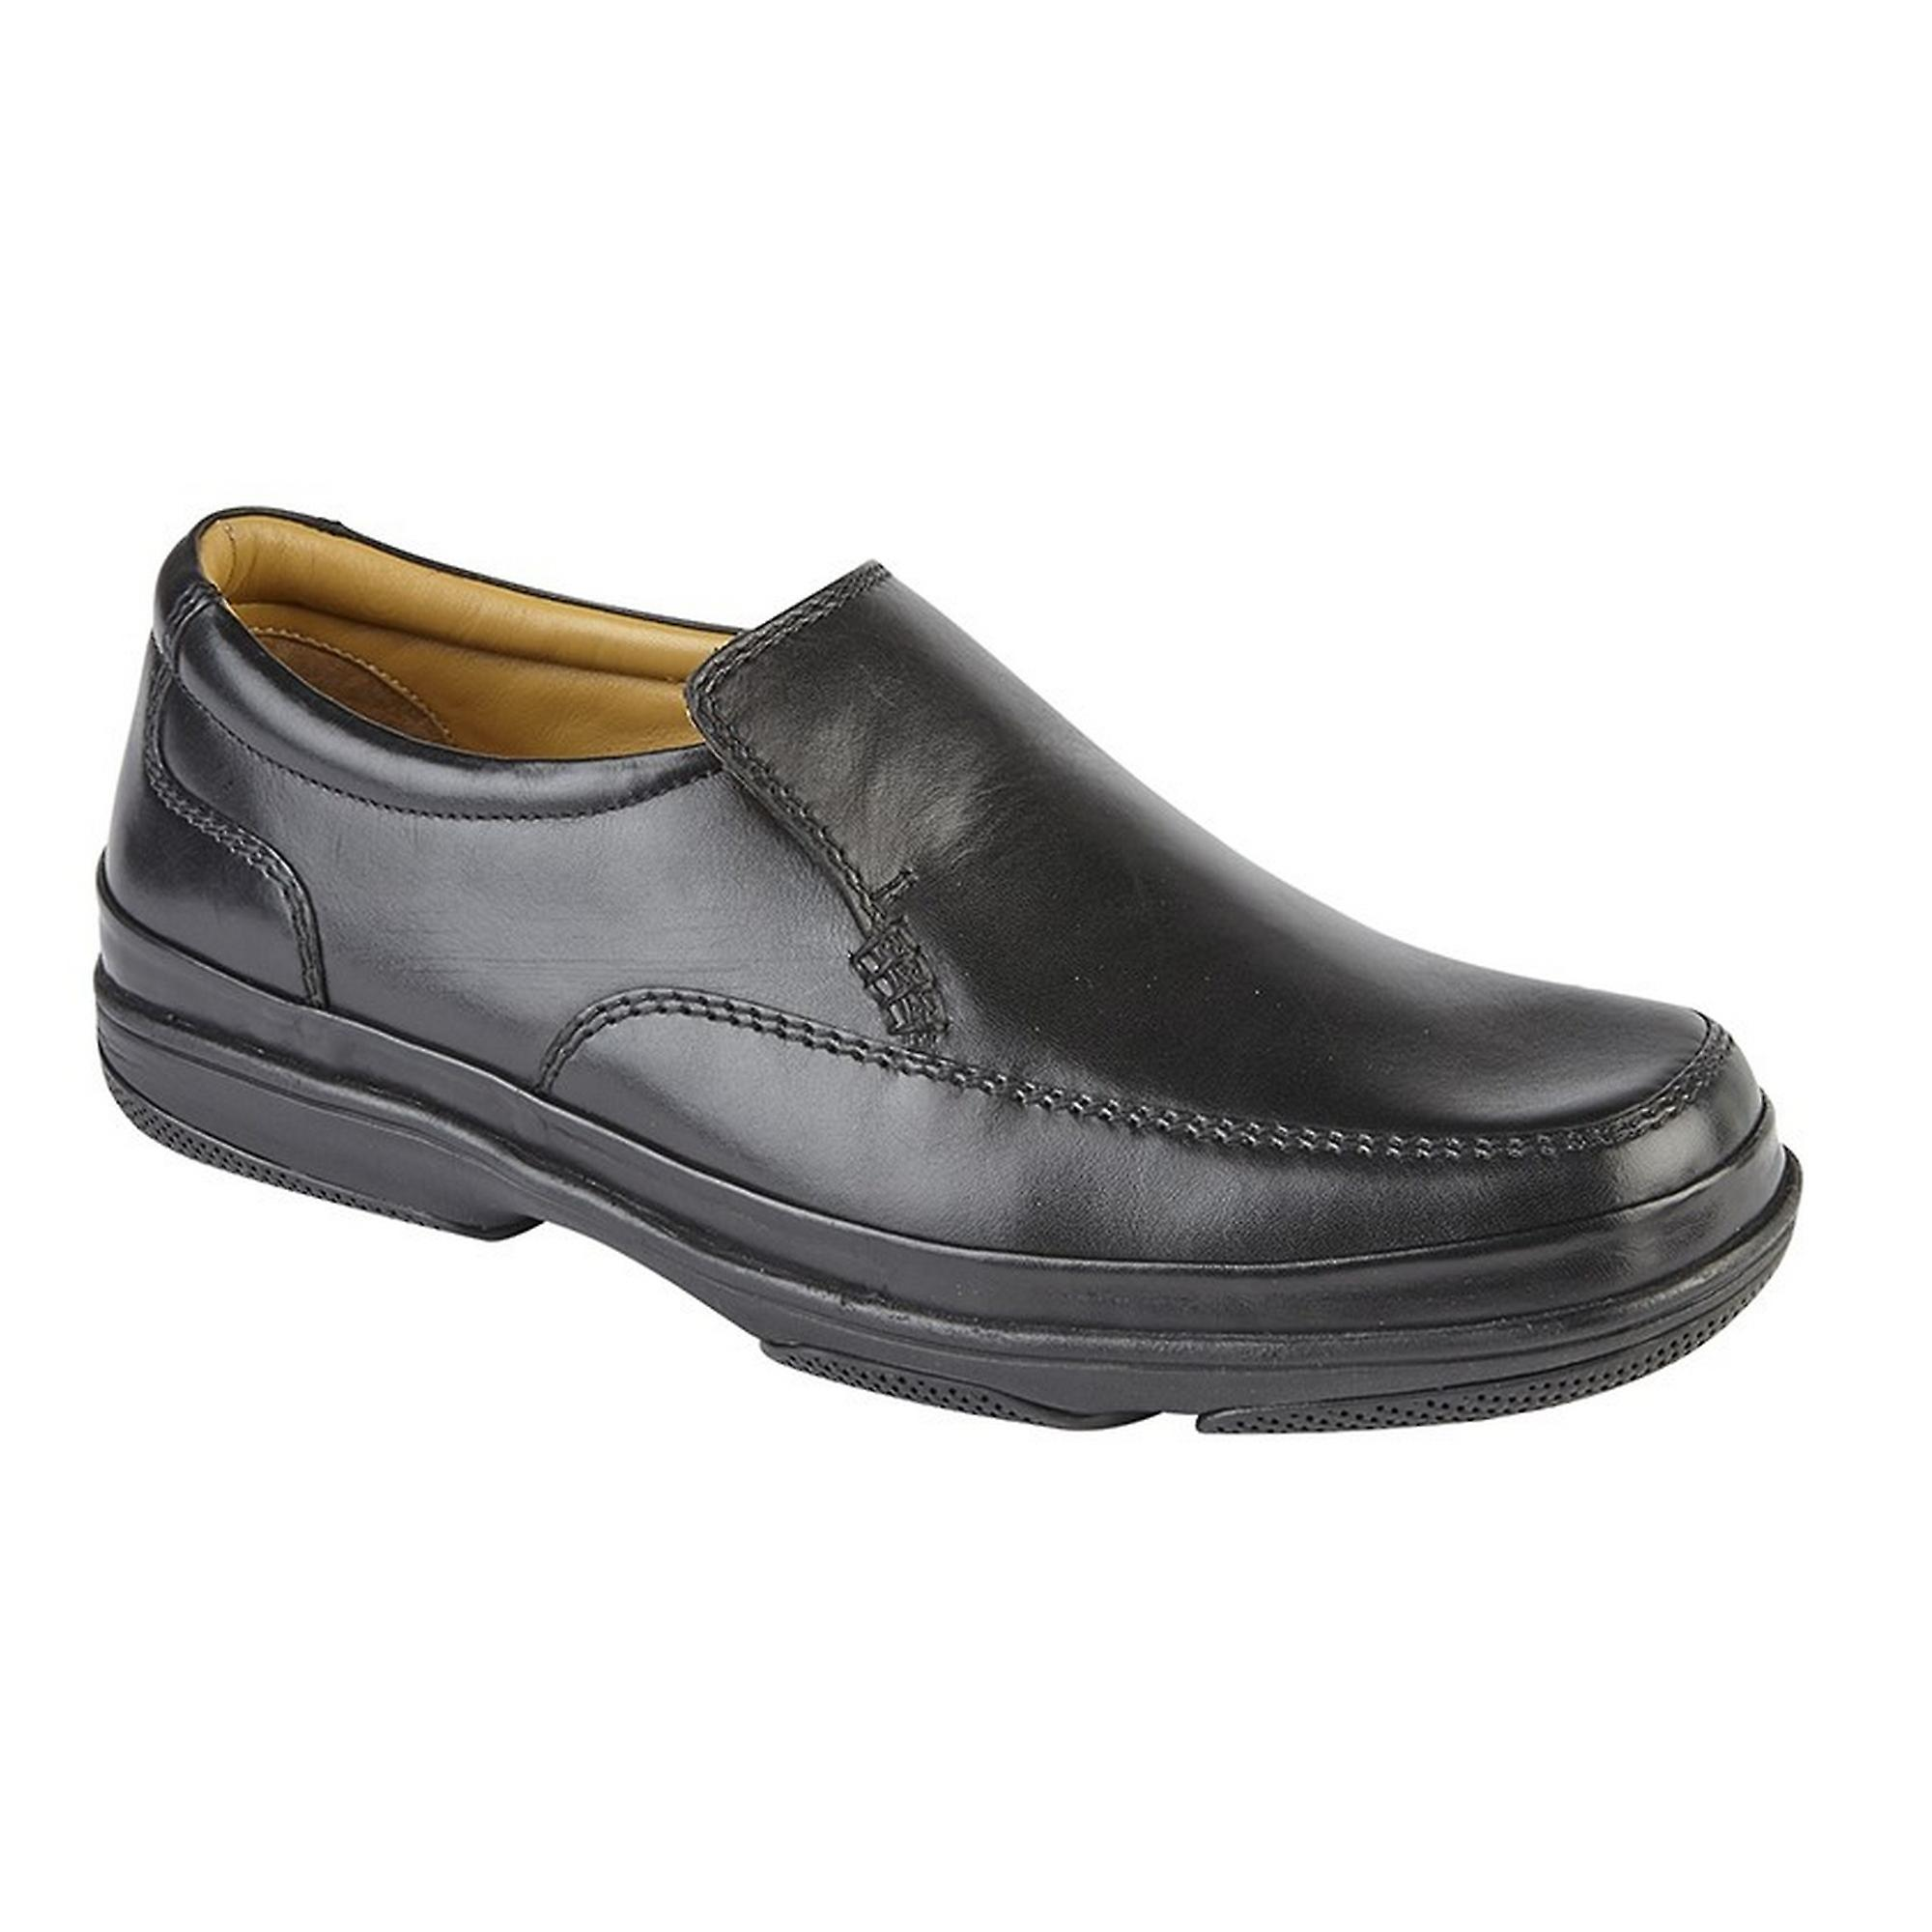 Roamers Mens large Superlight Deluxe cuir chaussures